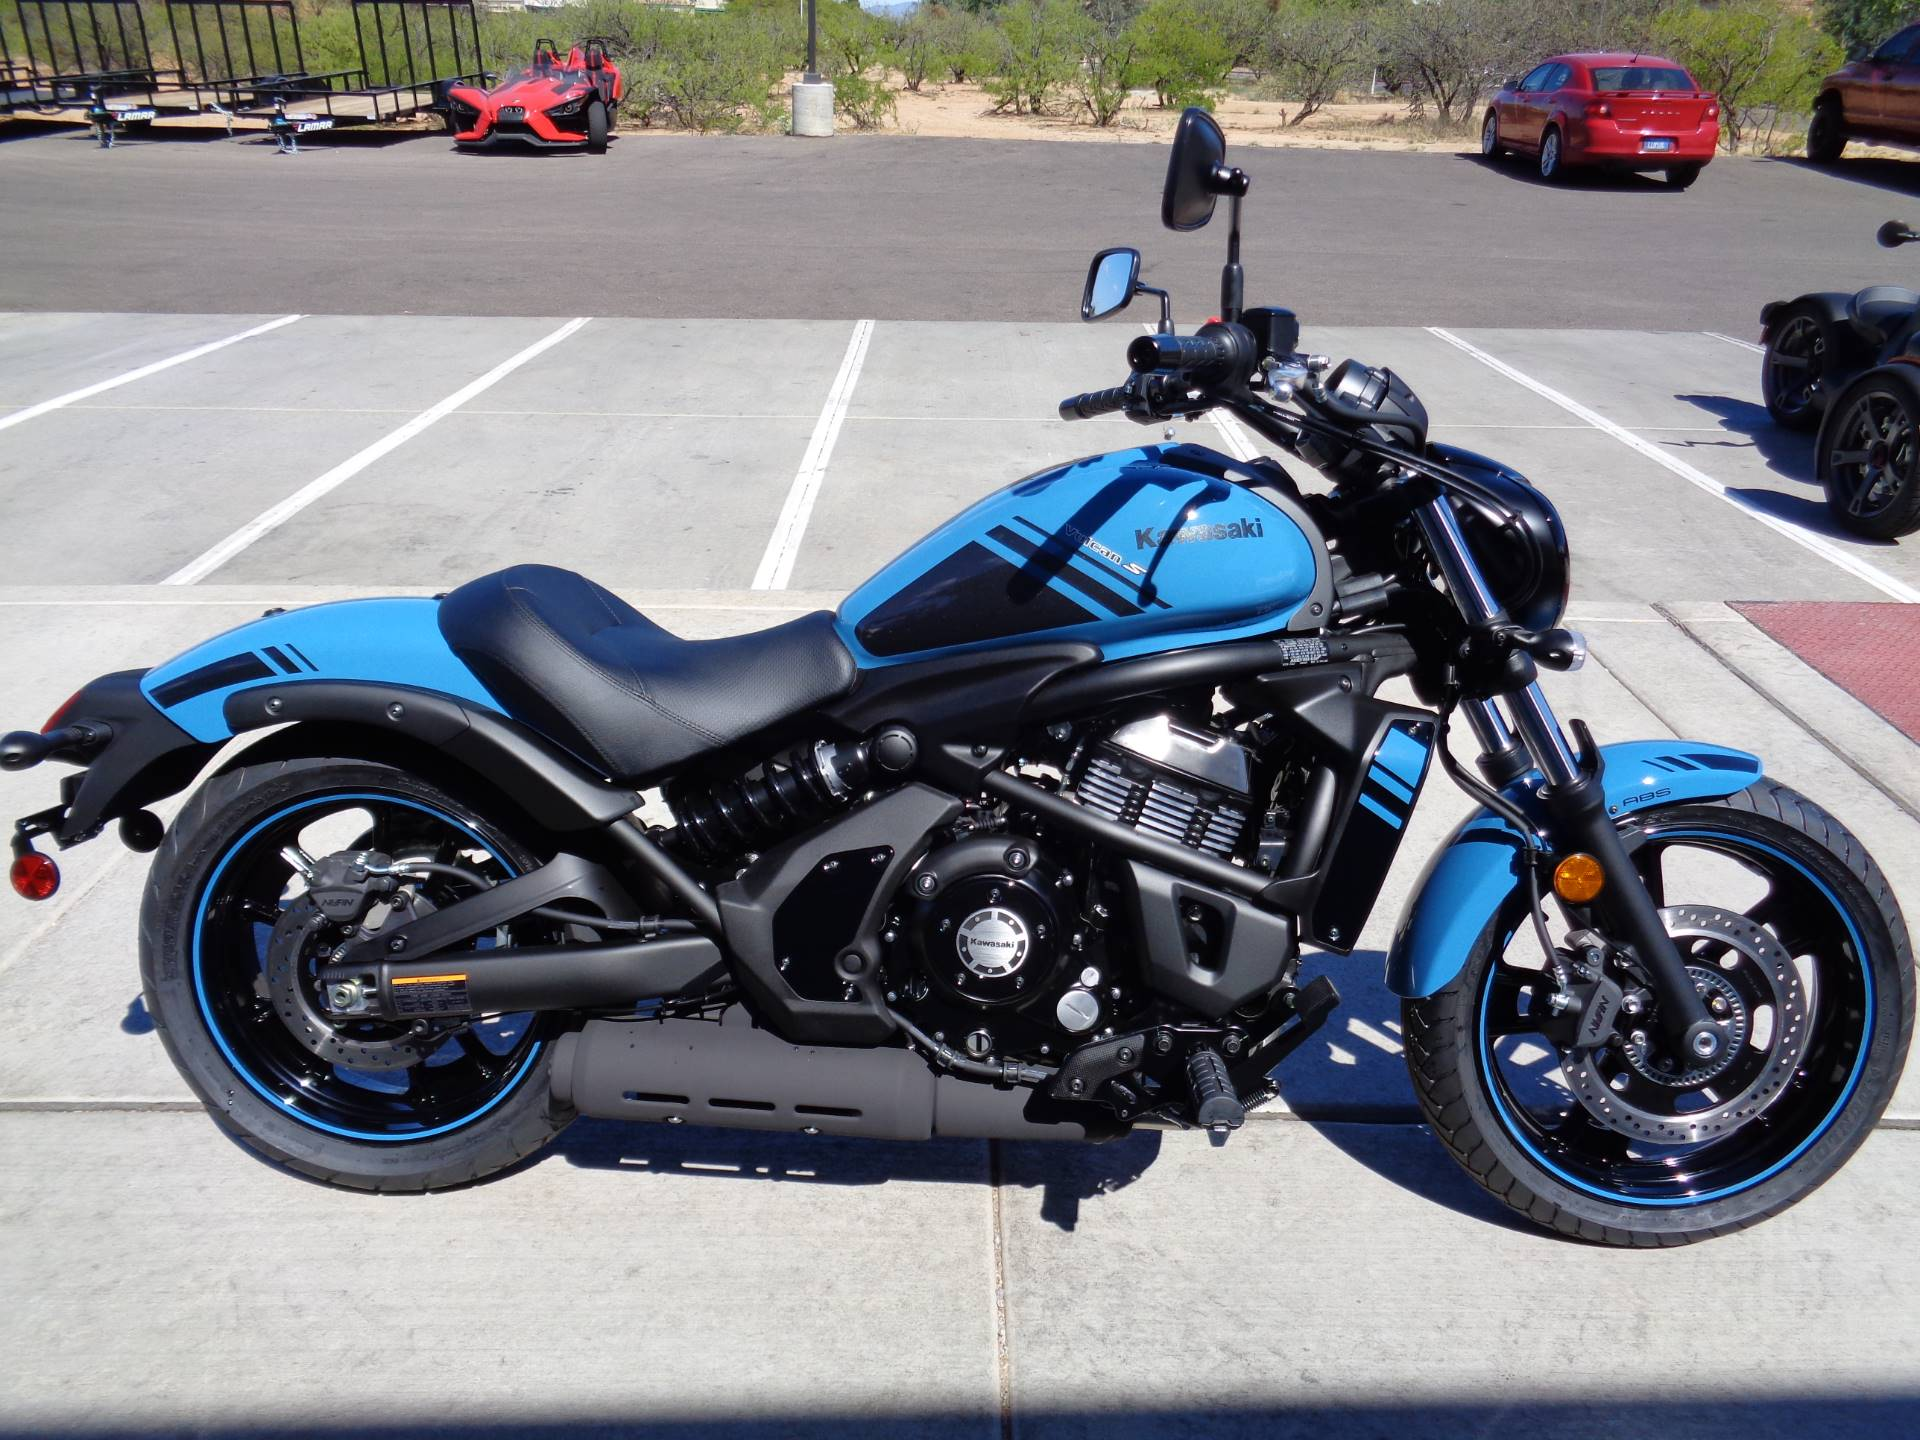 2019 Kawasaki Vulcan S ABS in Sierra Vista, Arizona - Photo 5